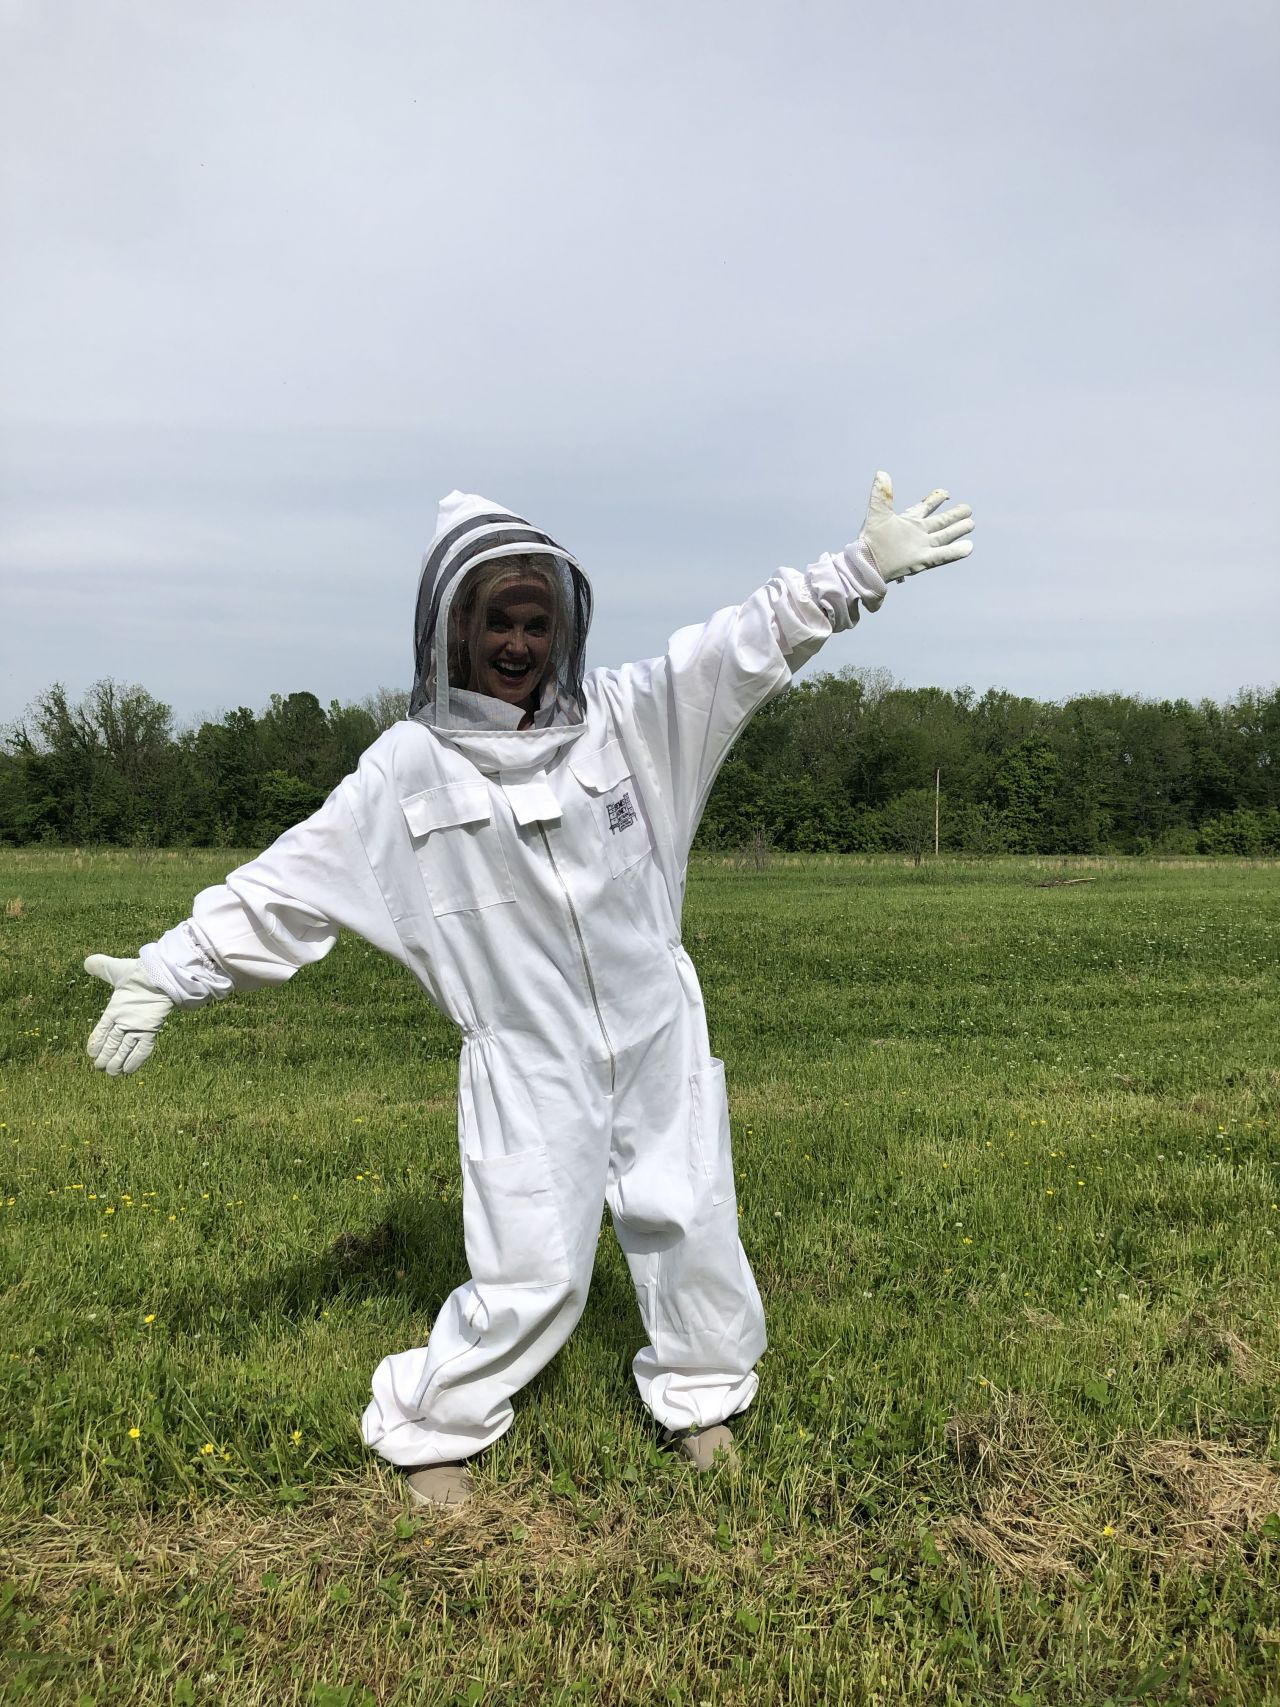 Lauren McCullough poses in field in full beekeeping attire